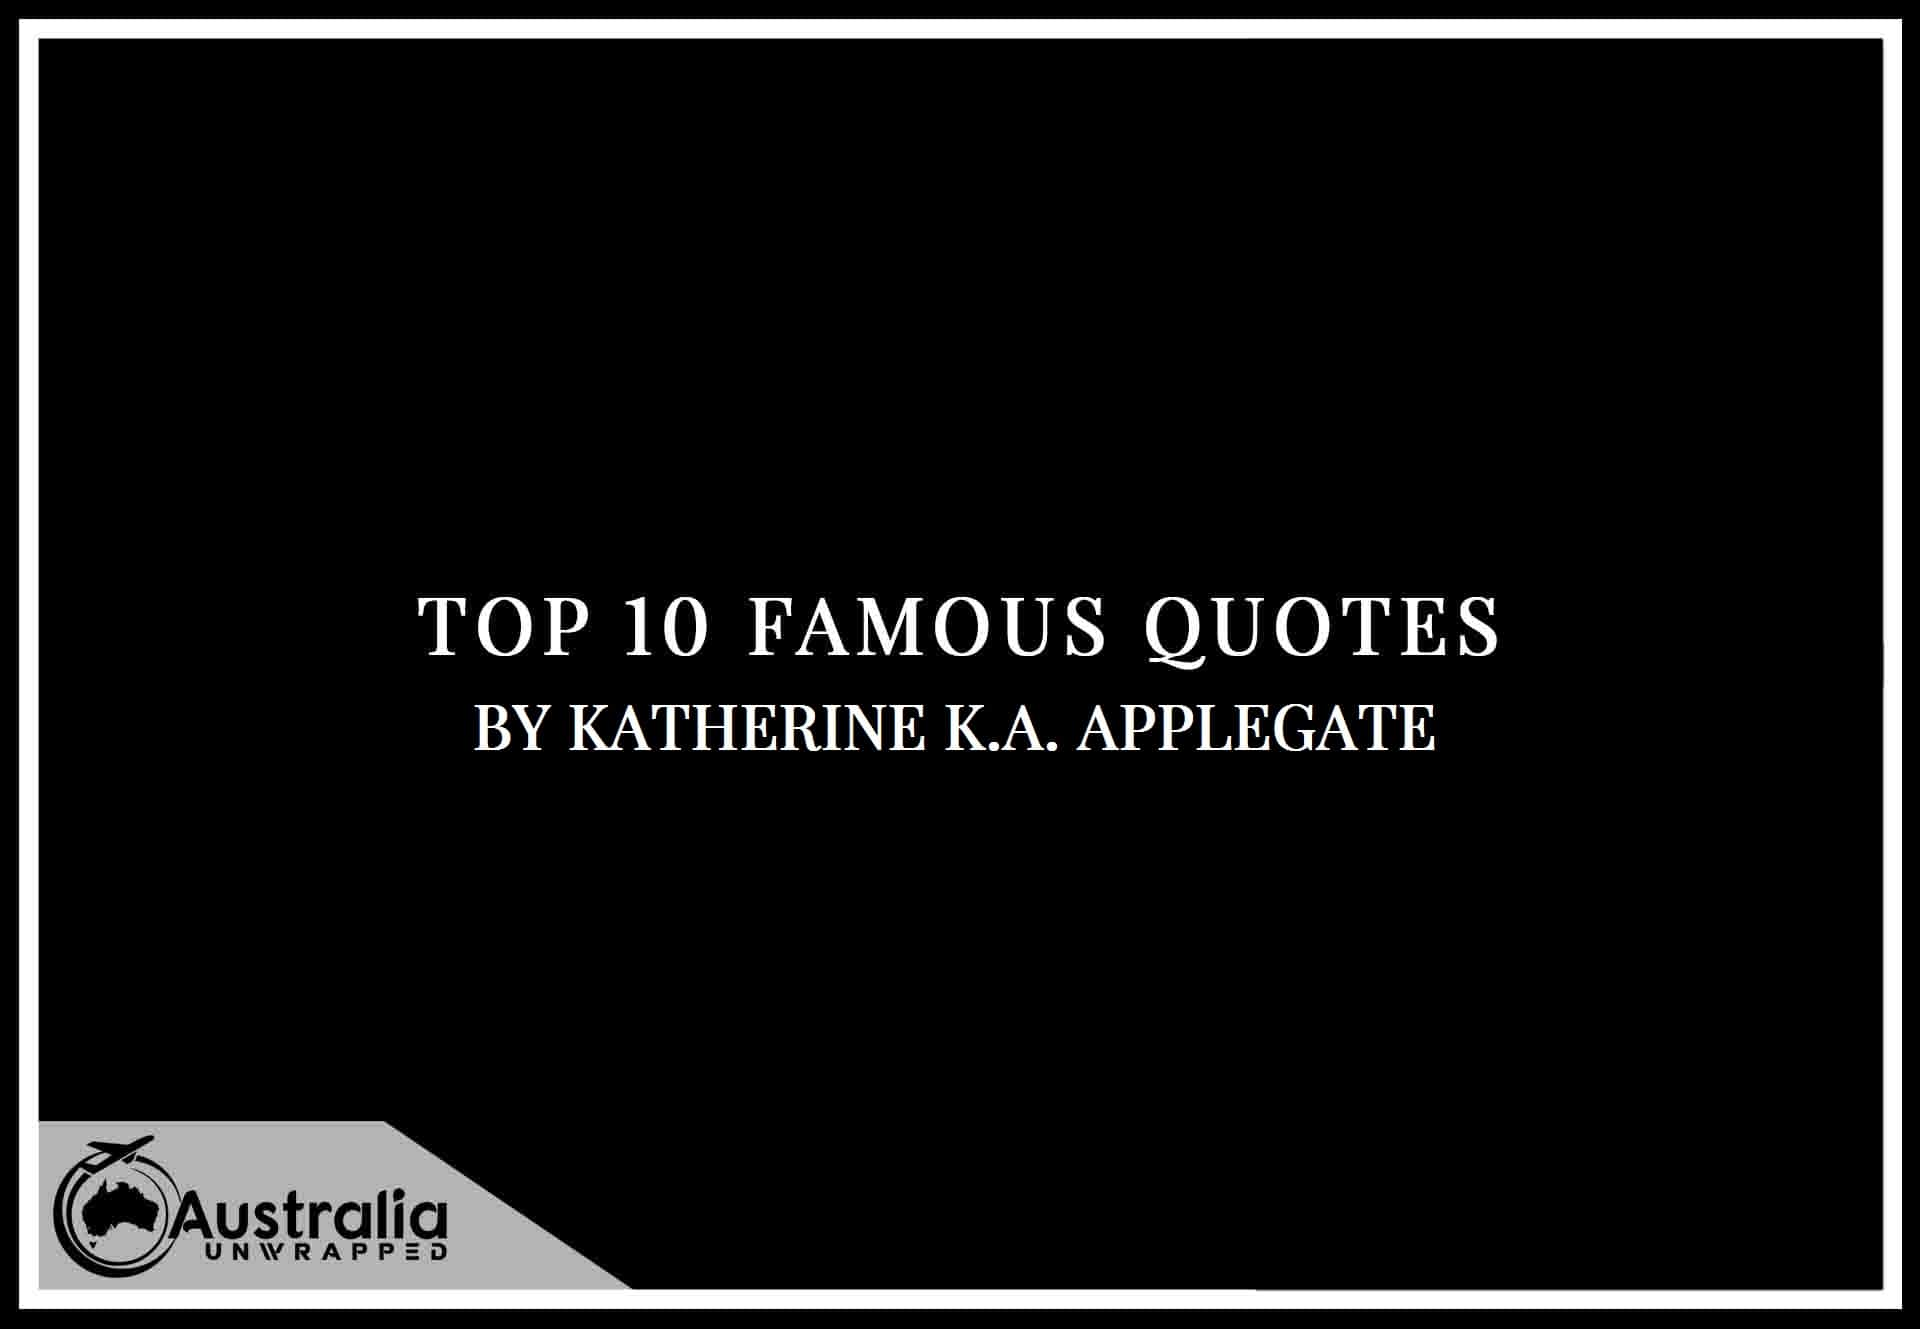 K. A. Applegate's Top 10 Popular and Famous Quotes